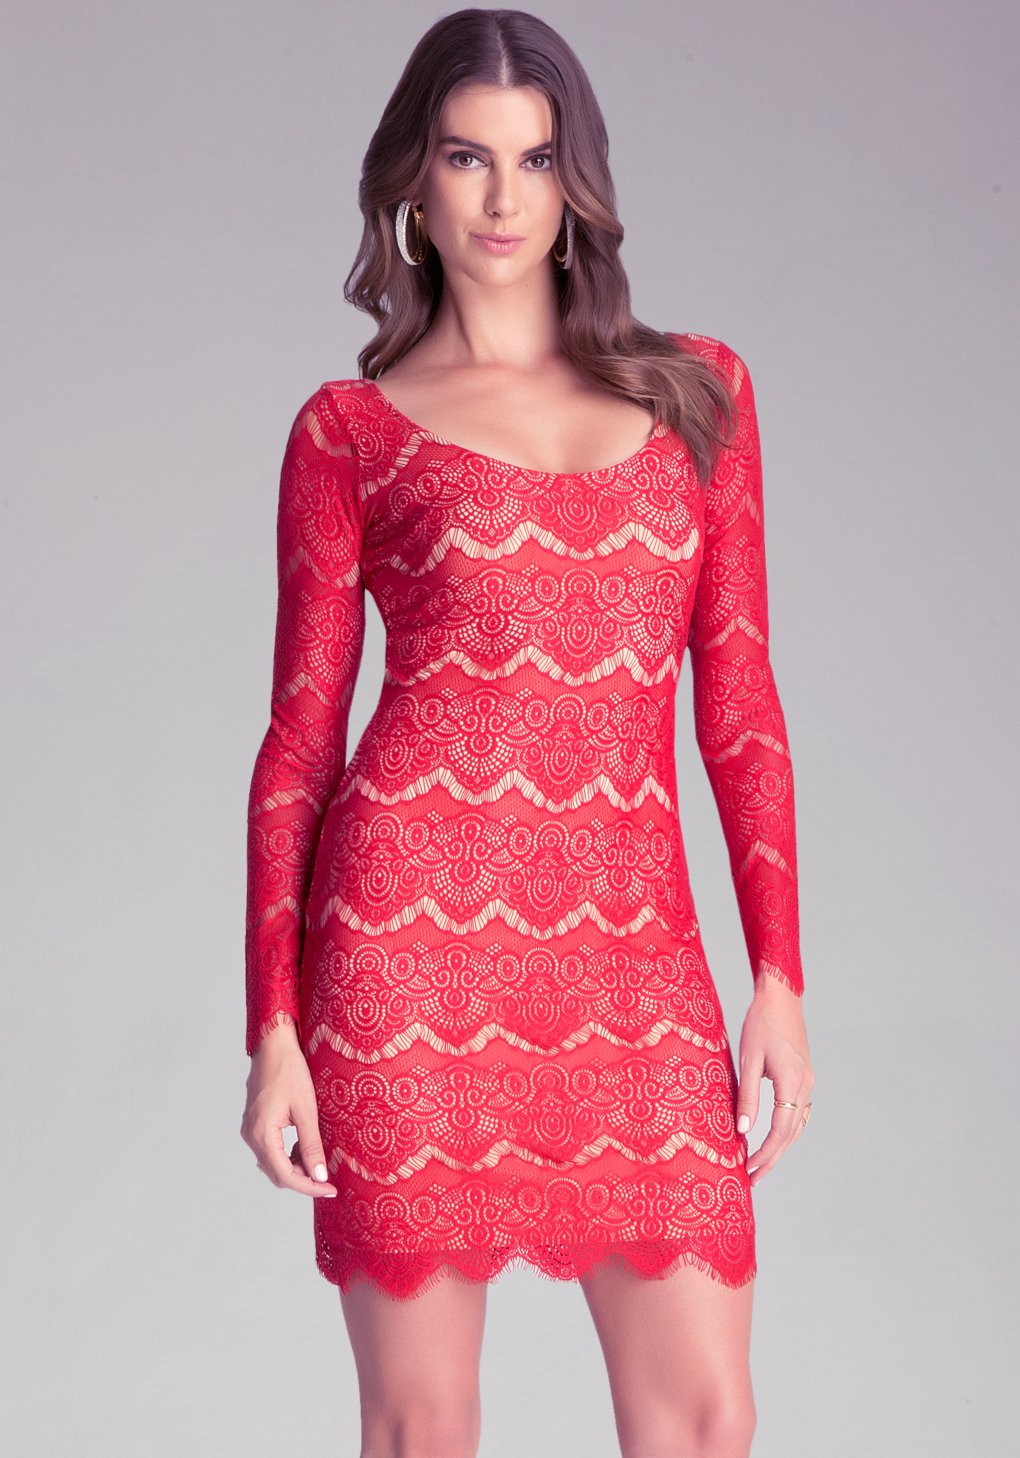 659d3094402 Bebe Long Sleeve Lace Dress in Red - Lyst